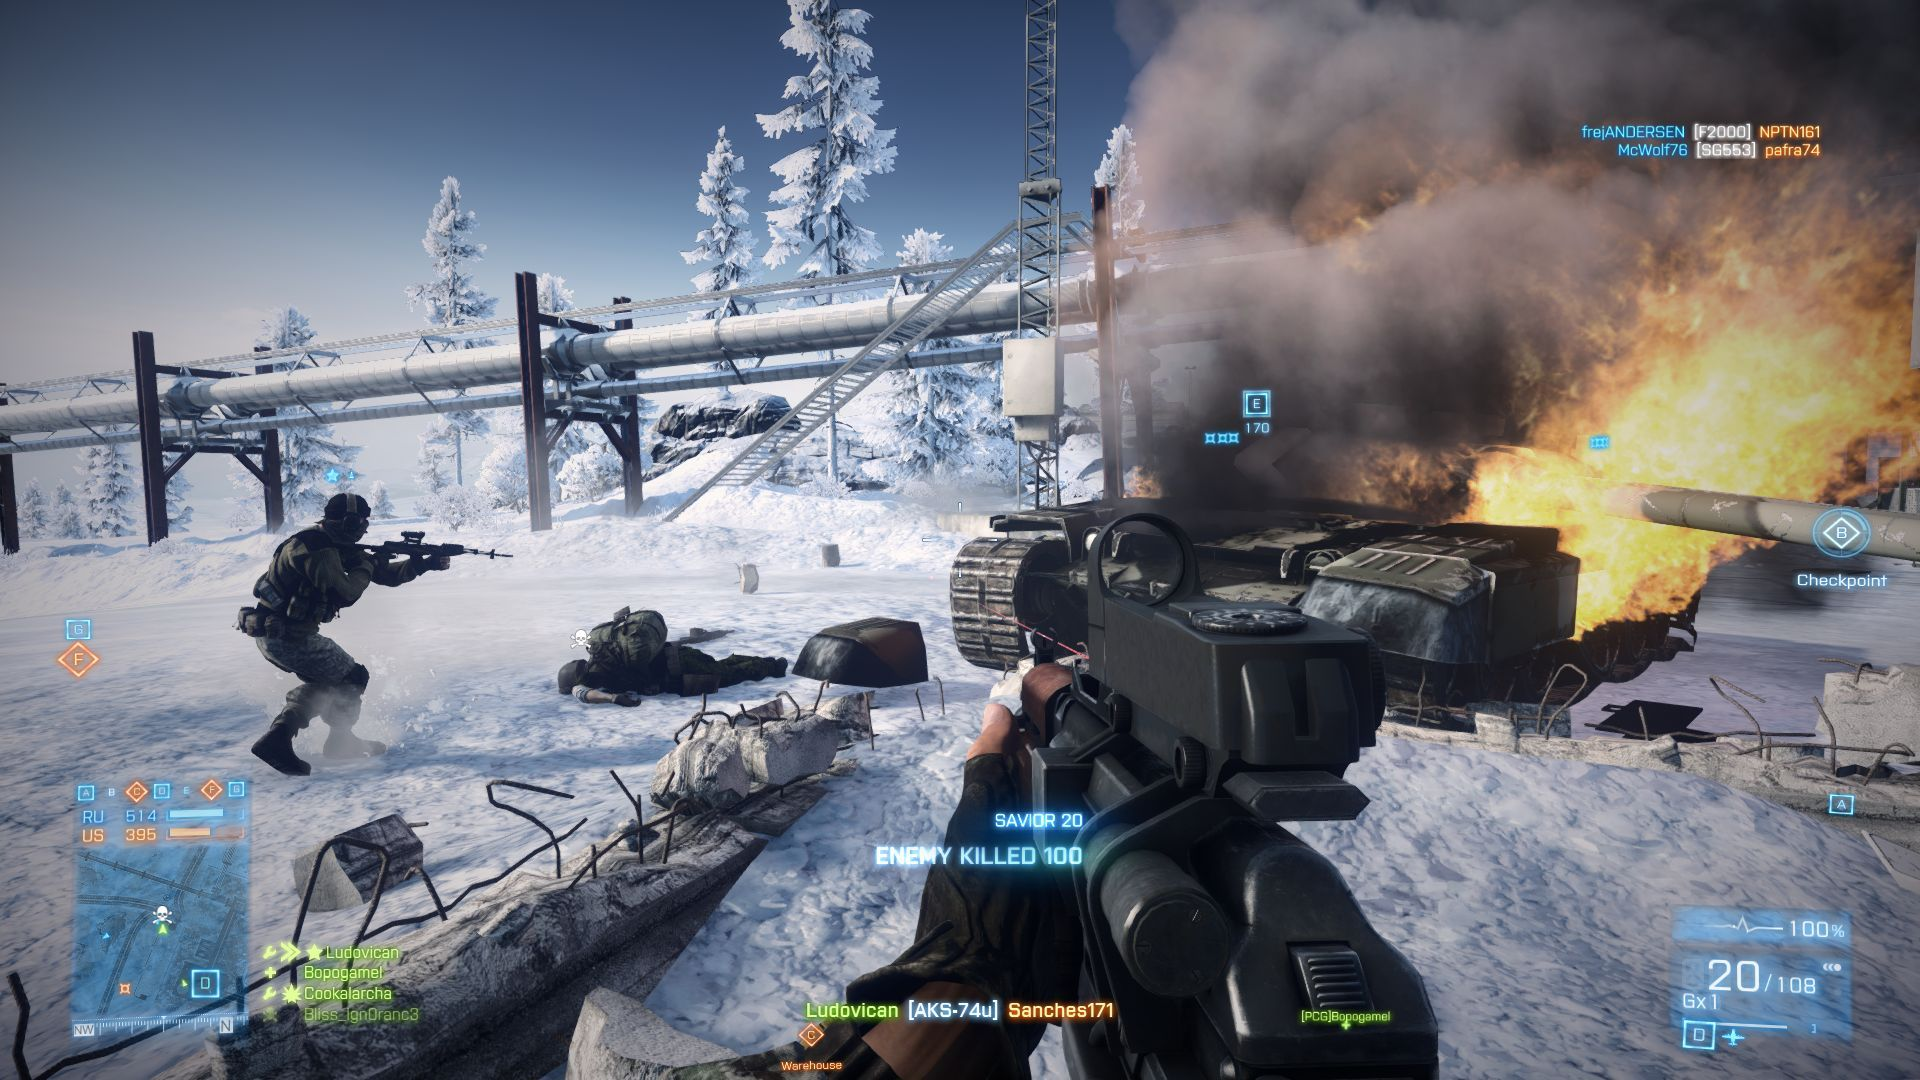 Free online multiplayer shooting games that you should